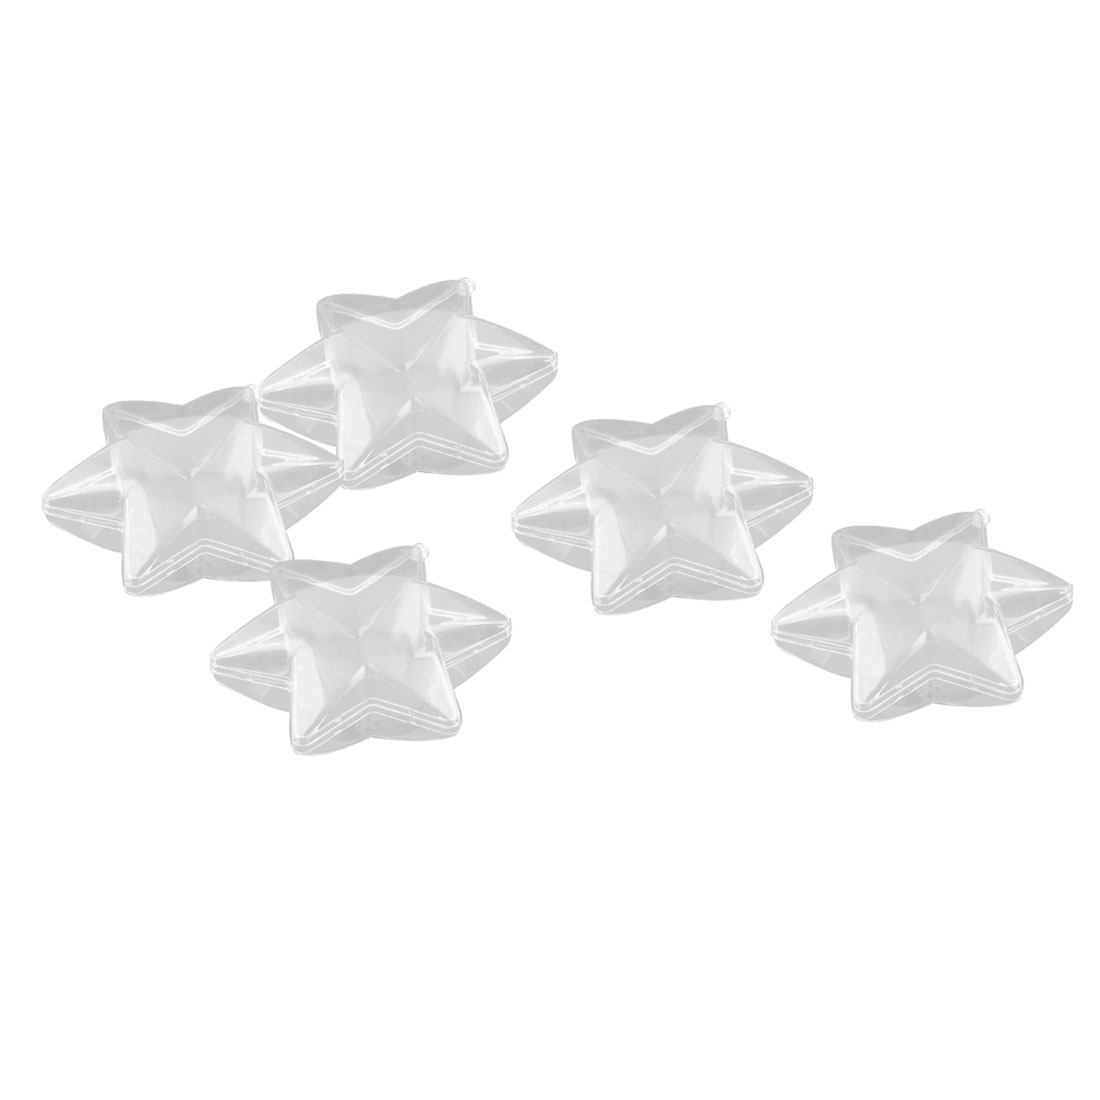 Home Garden Plastic Six-pointed Star Shaped Hanging Christmas Decoration Bauble Ball Clear 5pcs